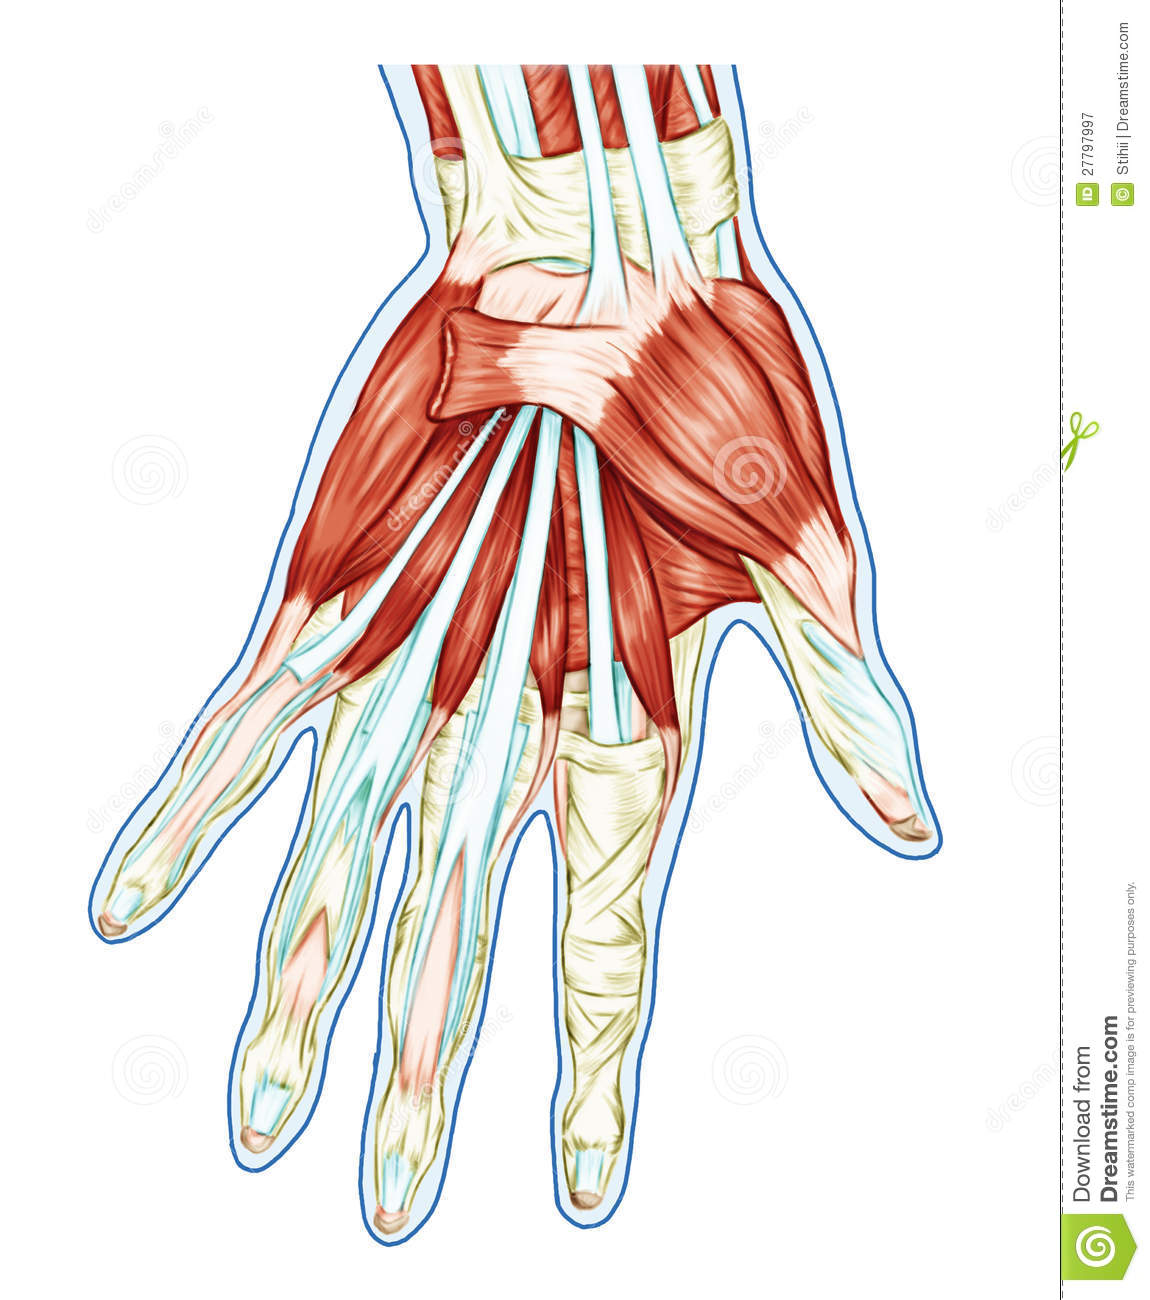 Anatomy of muscular system stock illustration. Illustration of ...